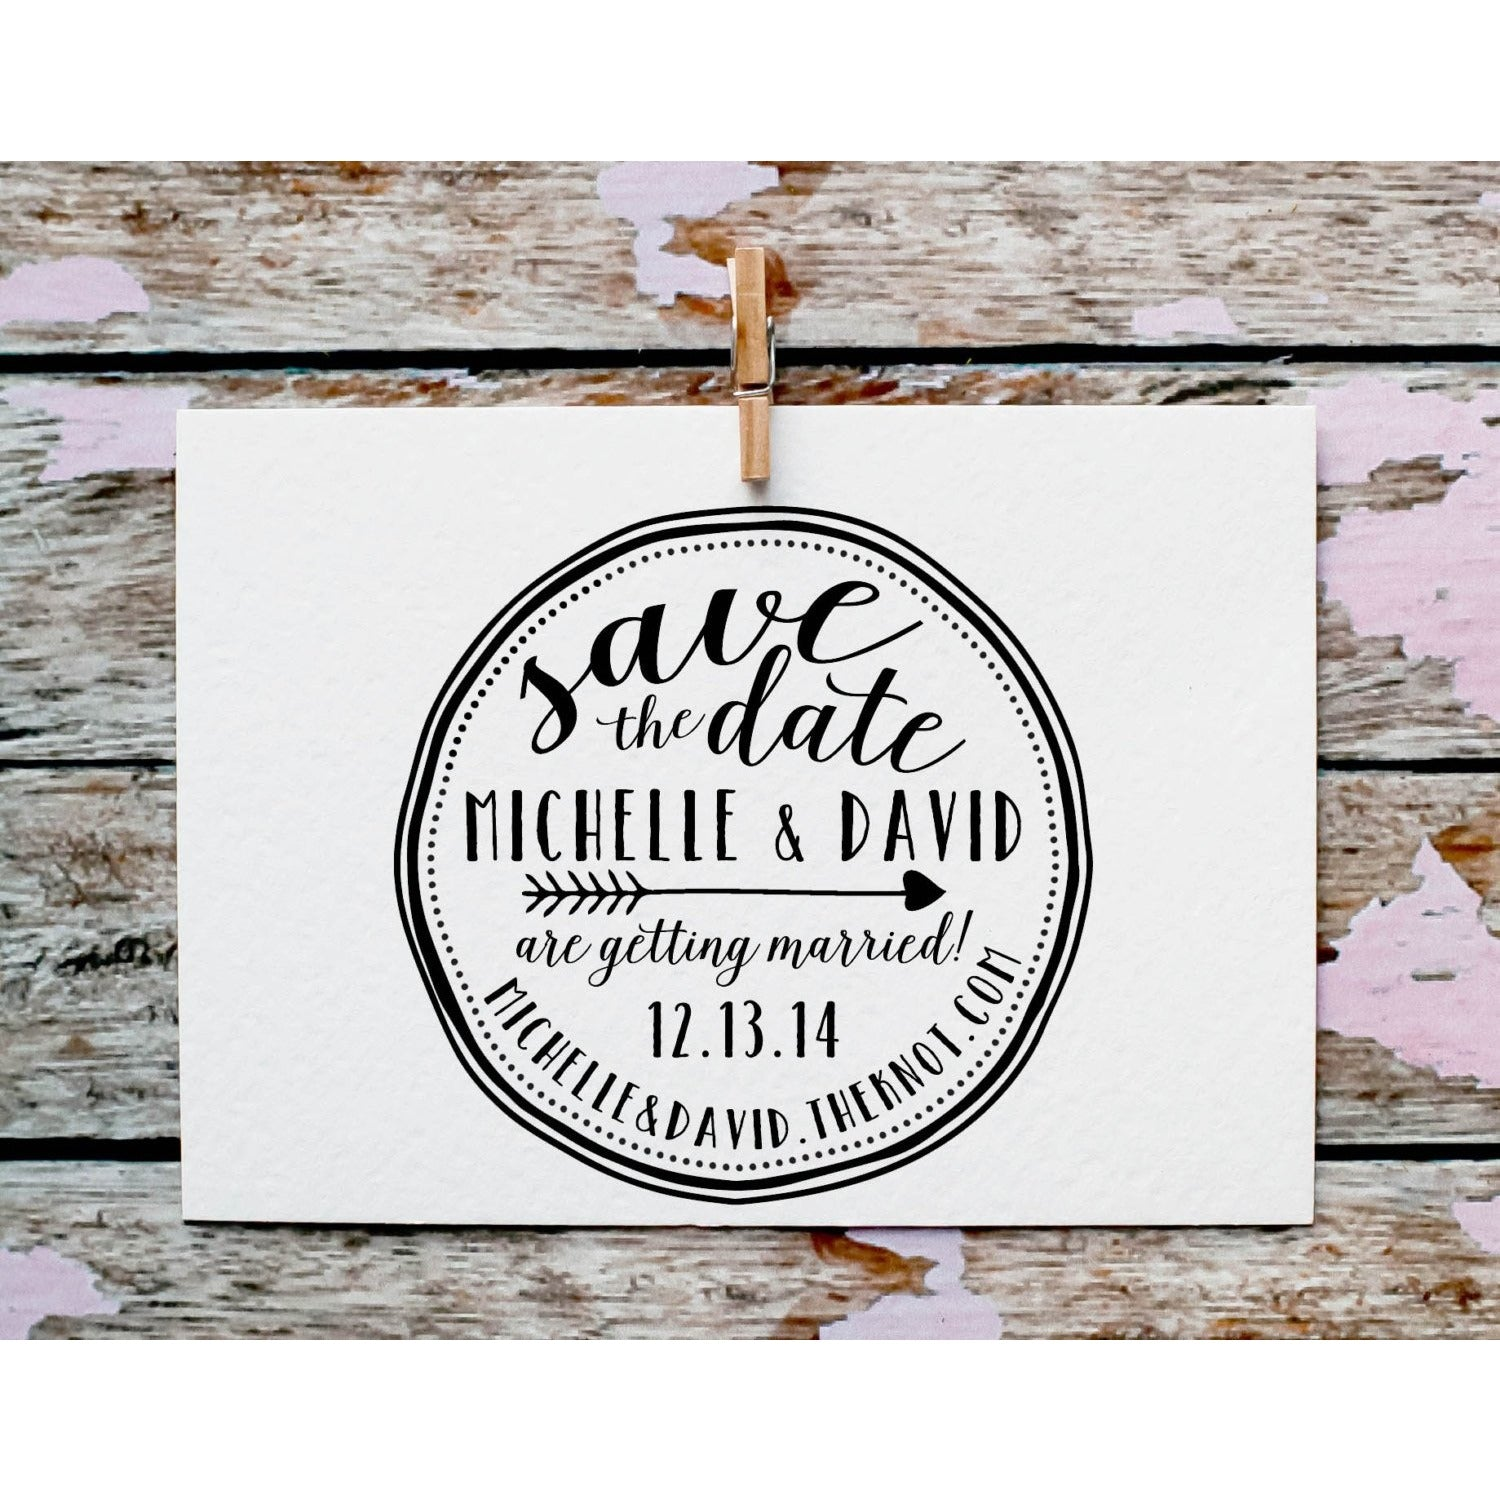 custom save the date stamp calligraphy rubber stamp red cloud studio